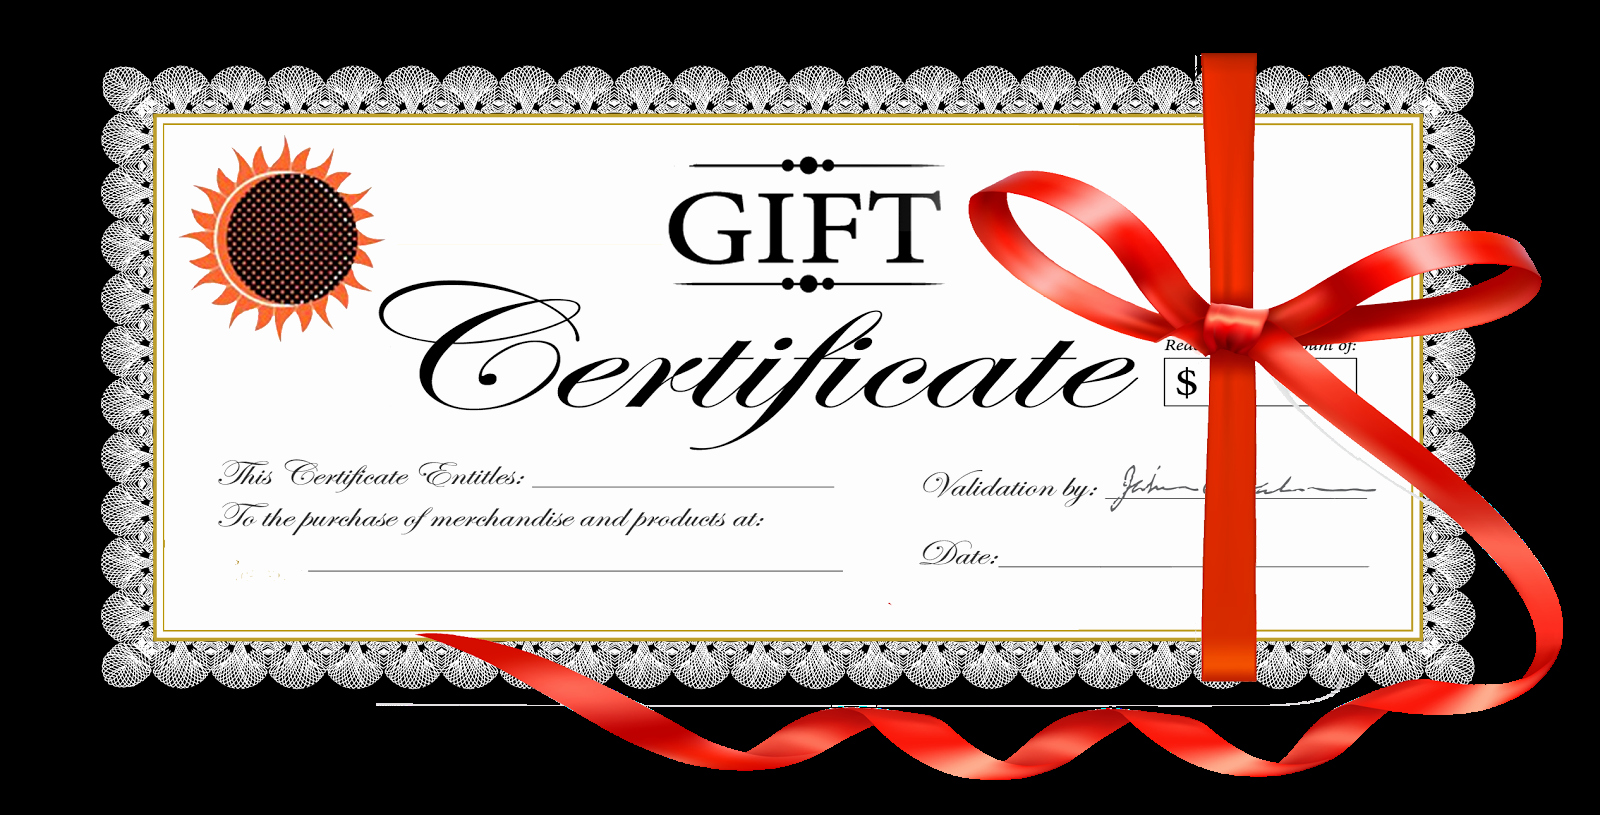 Word Template Gift Certificate Elegant 18 Gift Certificate Templates Excel Pdf formats